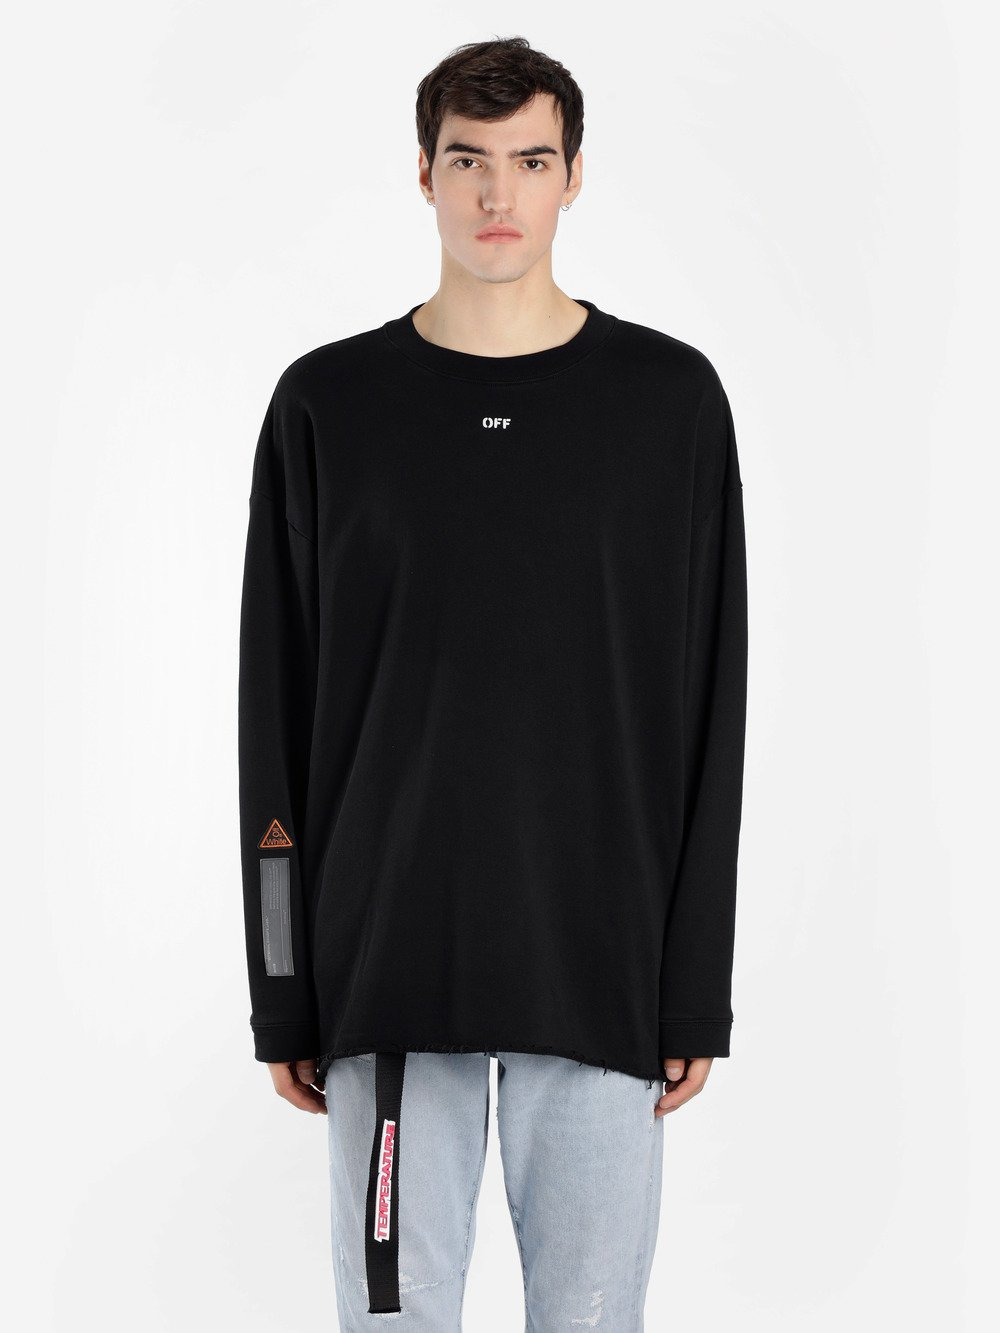 OFF WHITE C/O VIRGIL ABLOH MEN'S BLACK CREWNECK SWEATER WITH LATERAL TAPE EMBROIDERIES